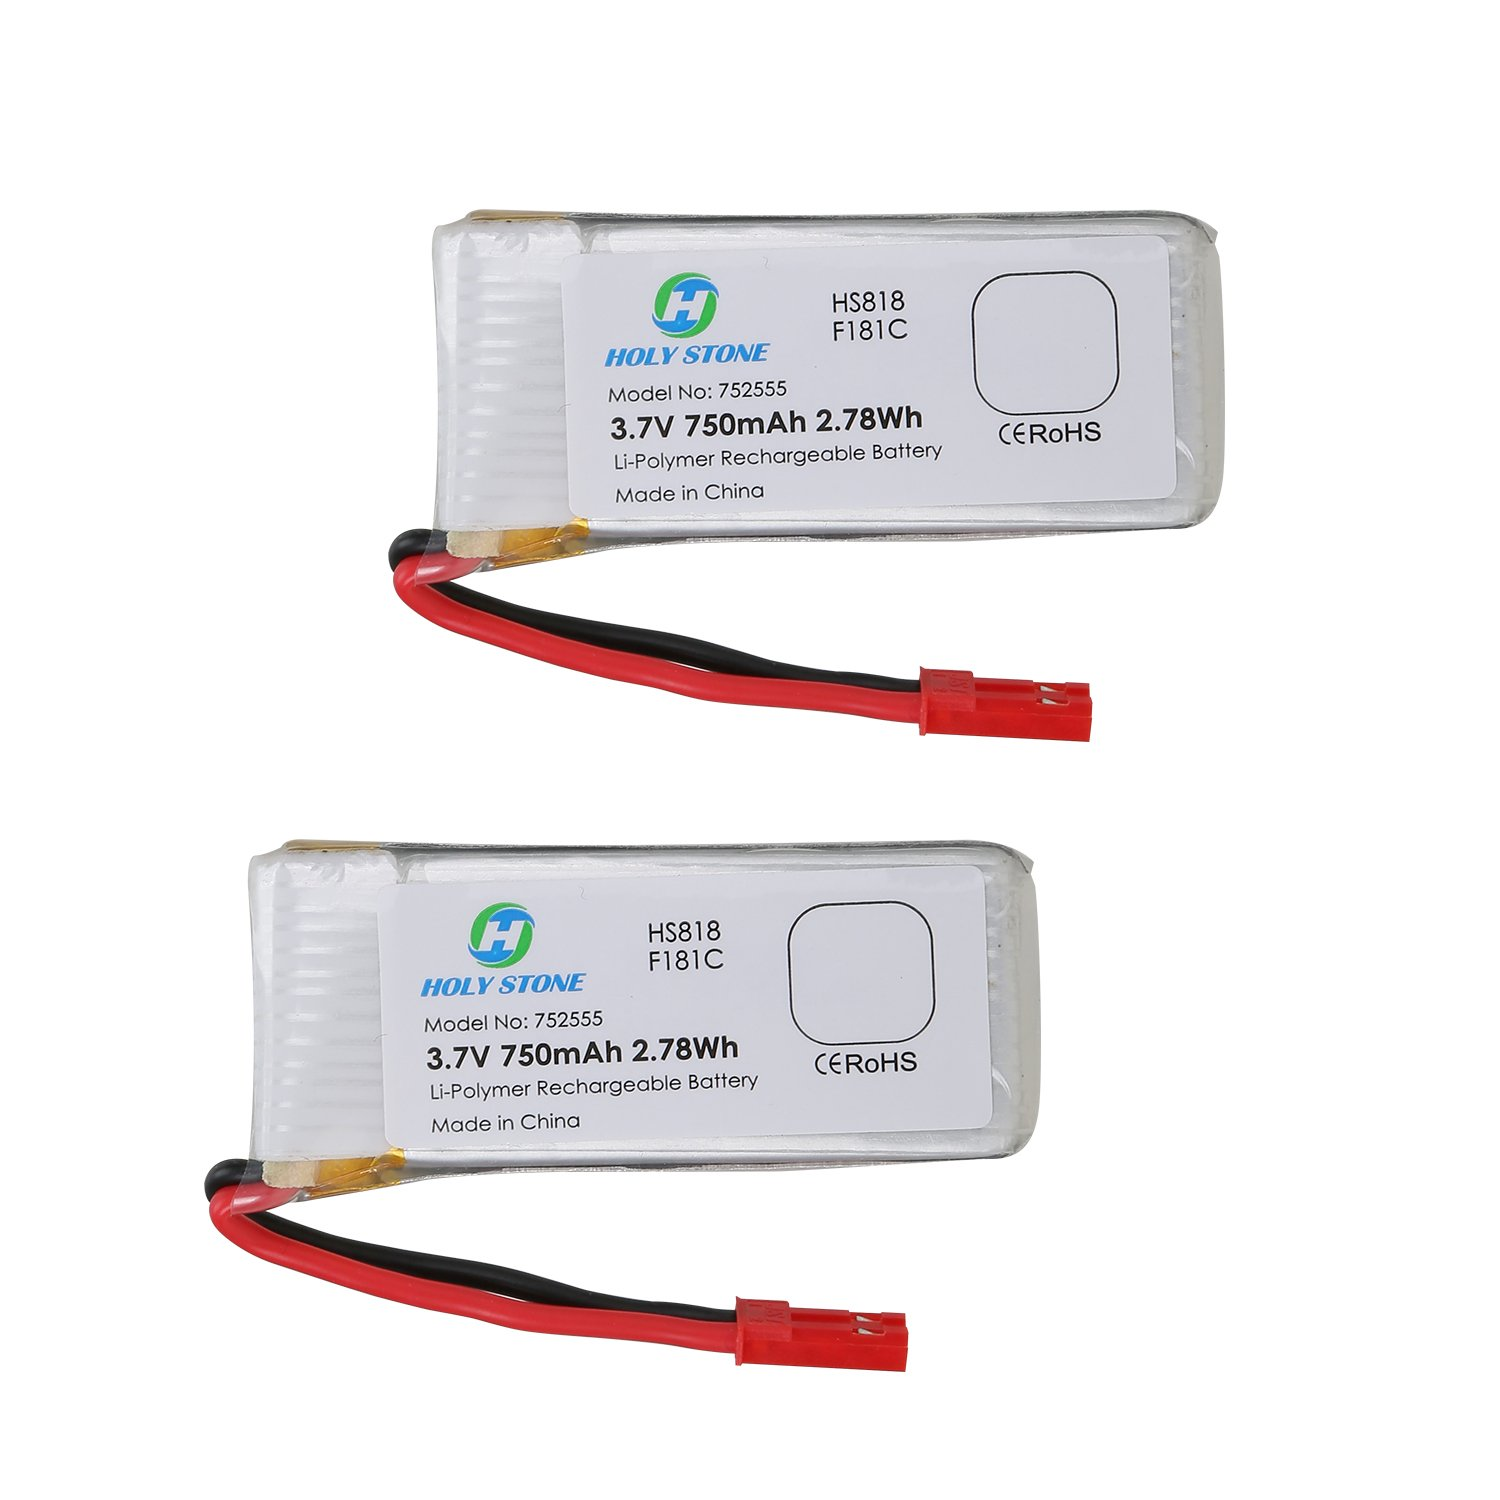 Holy Stone 2 x 3.7V 750mAh Lipo Battery for RC Quadcopter F181